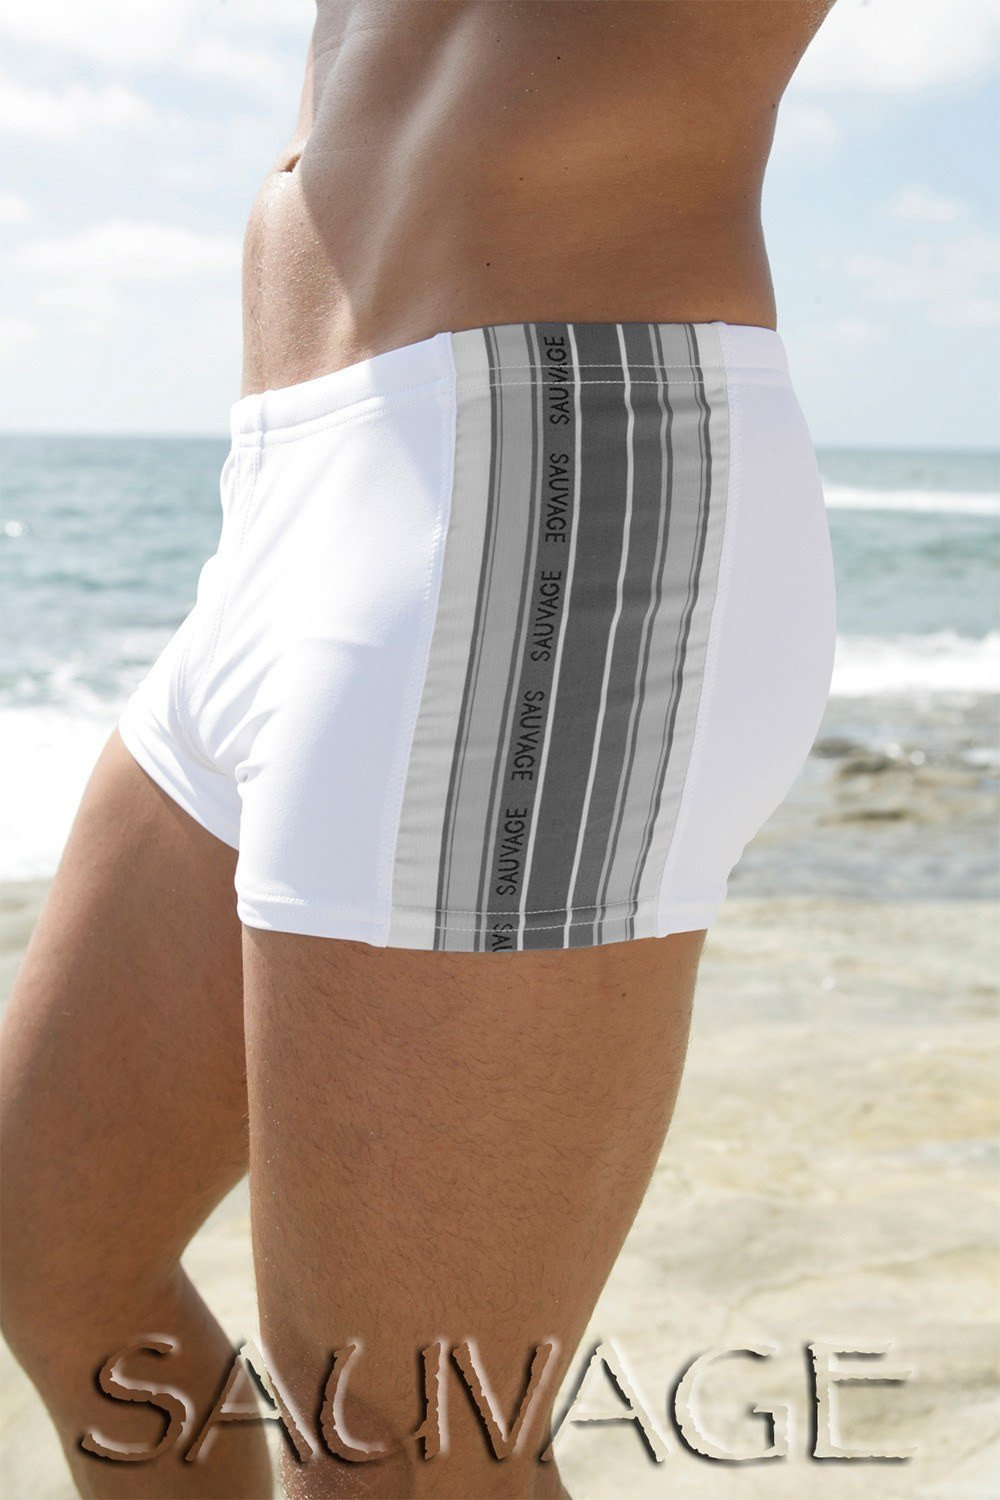 Sauvage Swimwear, Designer Swimwear from San Diego, CA made in usaDiver Square Cut, Small - 30 / White, Mens Swim, Men's Swim, Sauvage - 2